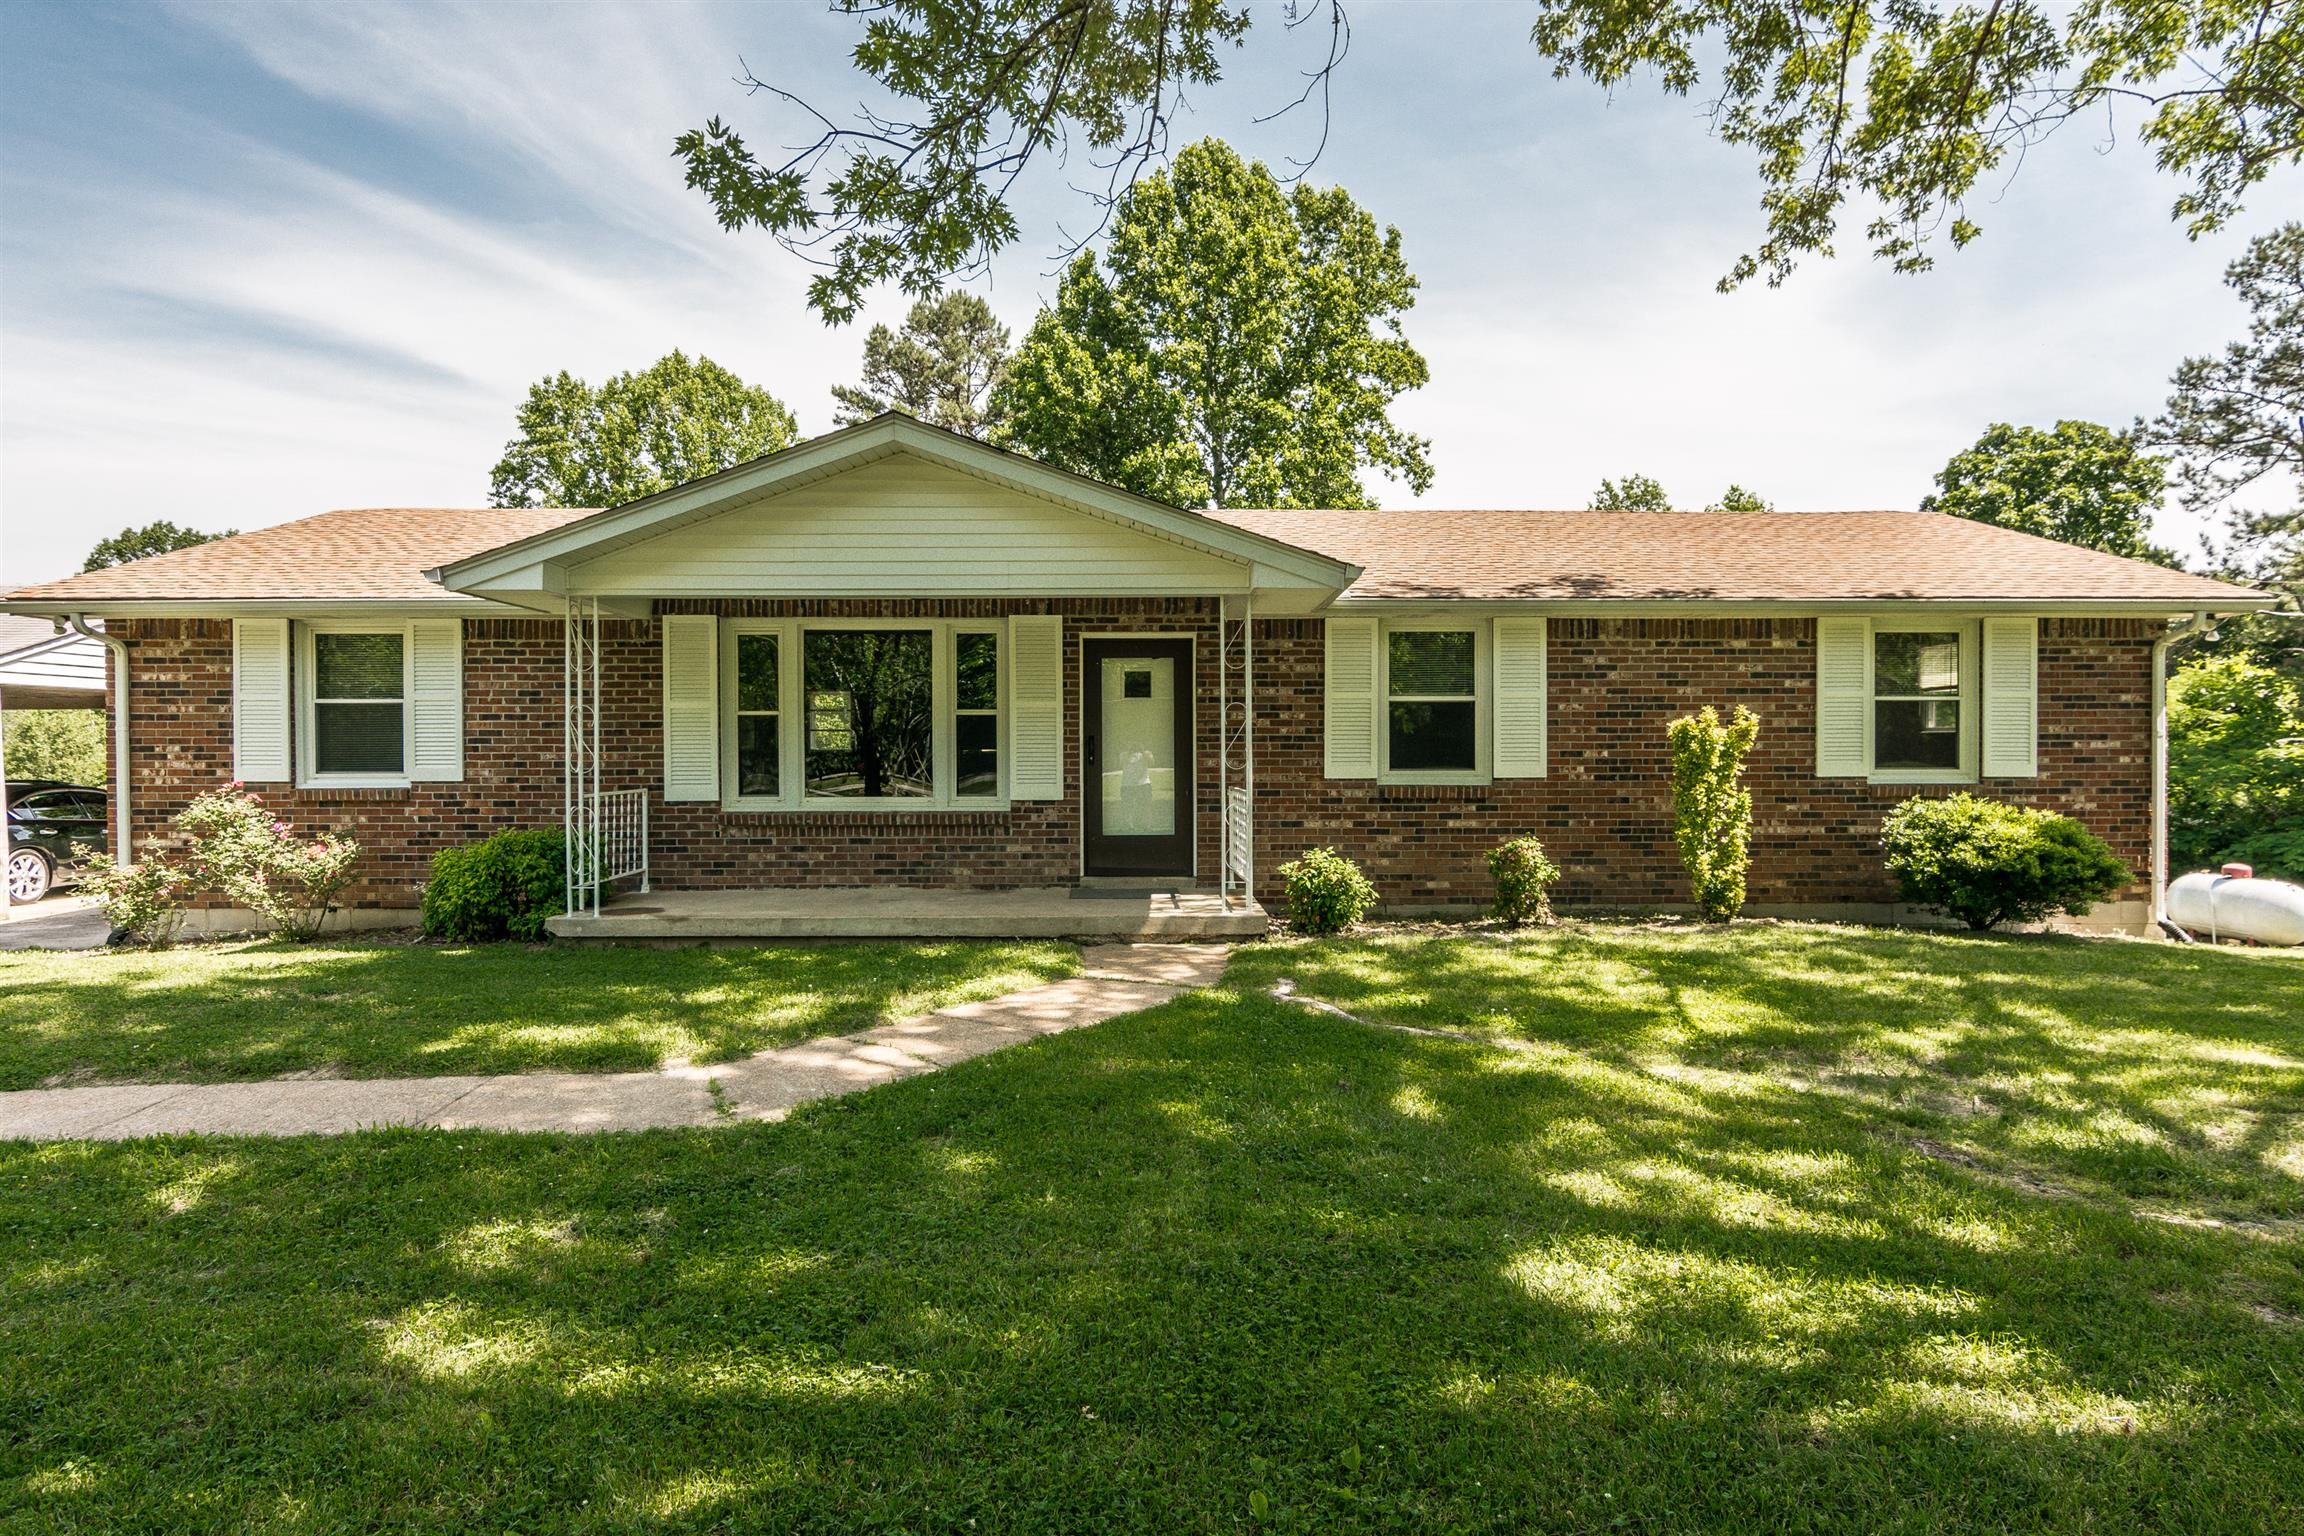 5124 Ridge Hill Drive, Joelton, TN 37080 - Joelton, TN real estate listing